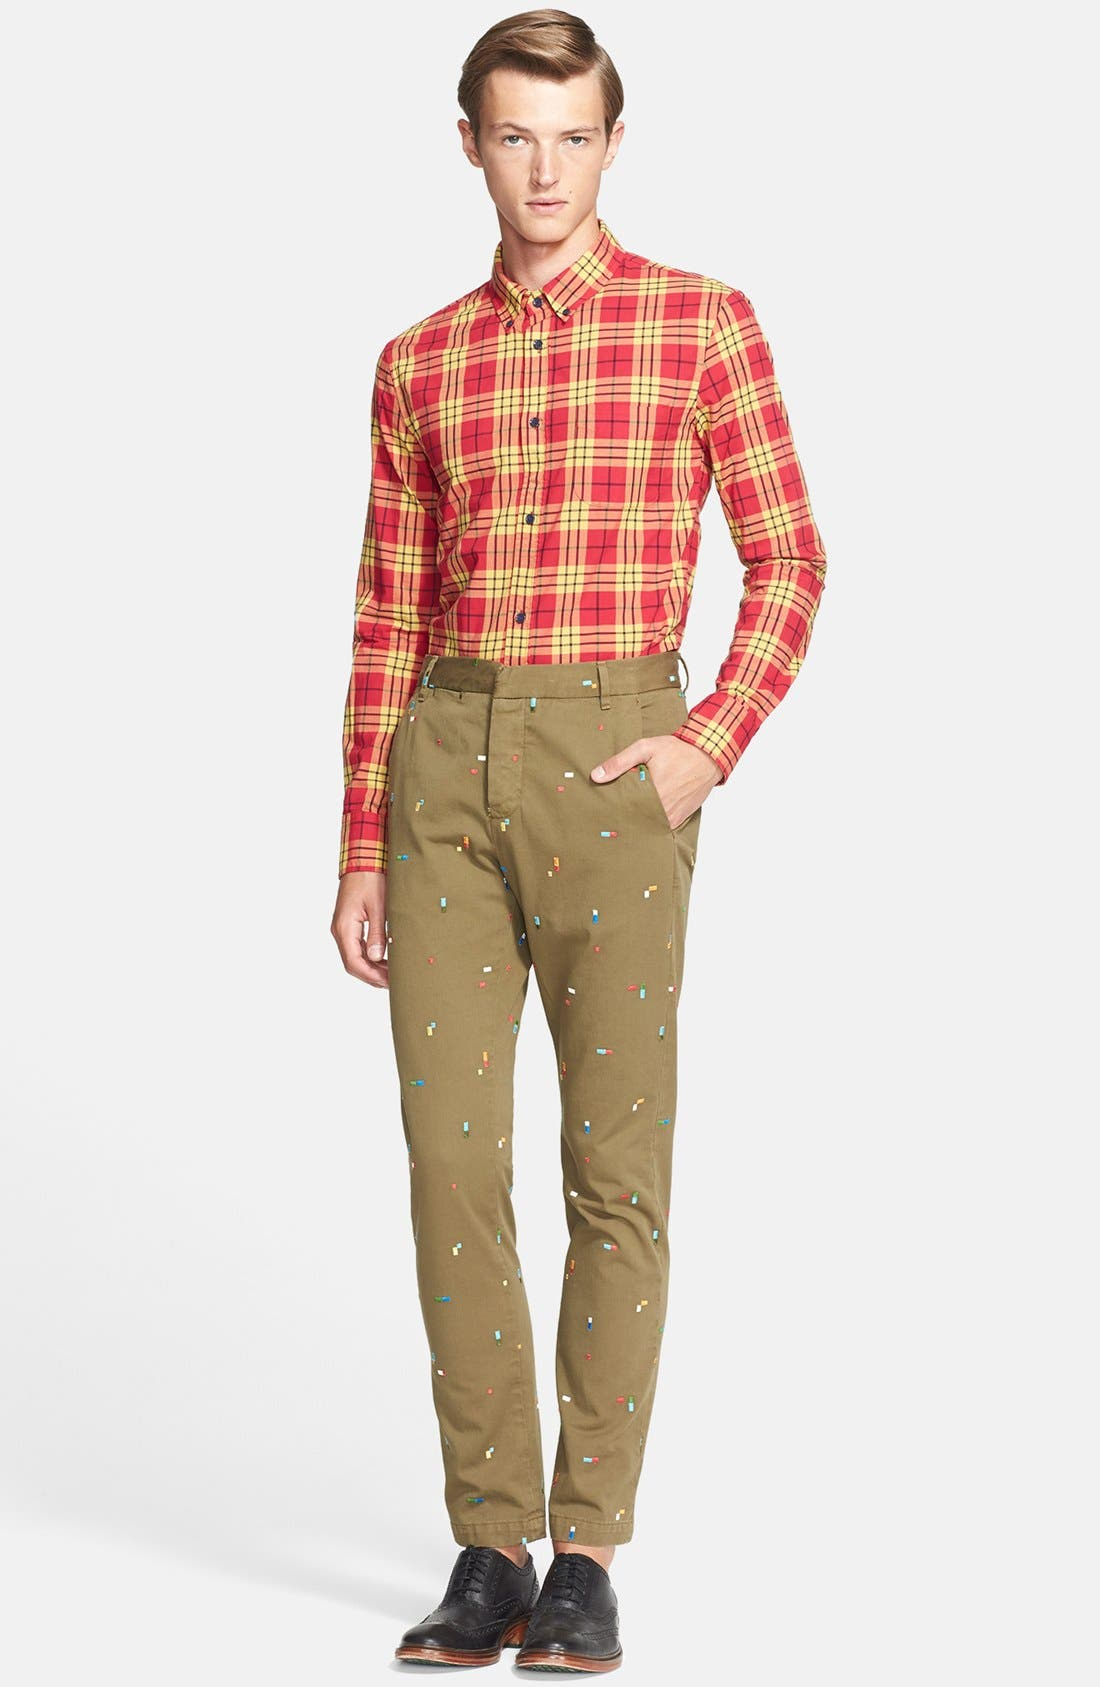 BAND OF OUTSIDERS, Slim Fit Embroidered Chinos, Alternate thumbnail 3, color, 411